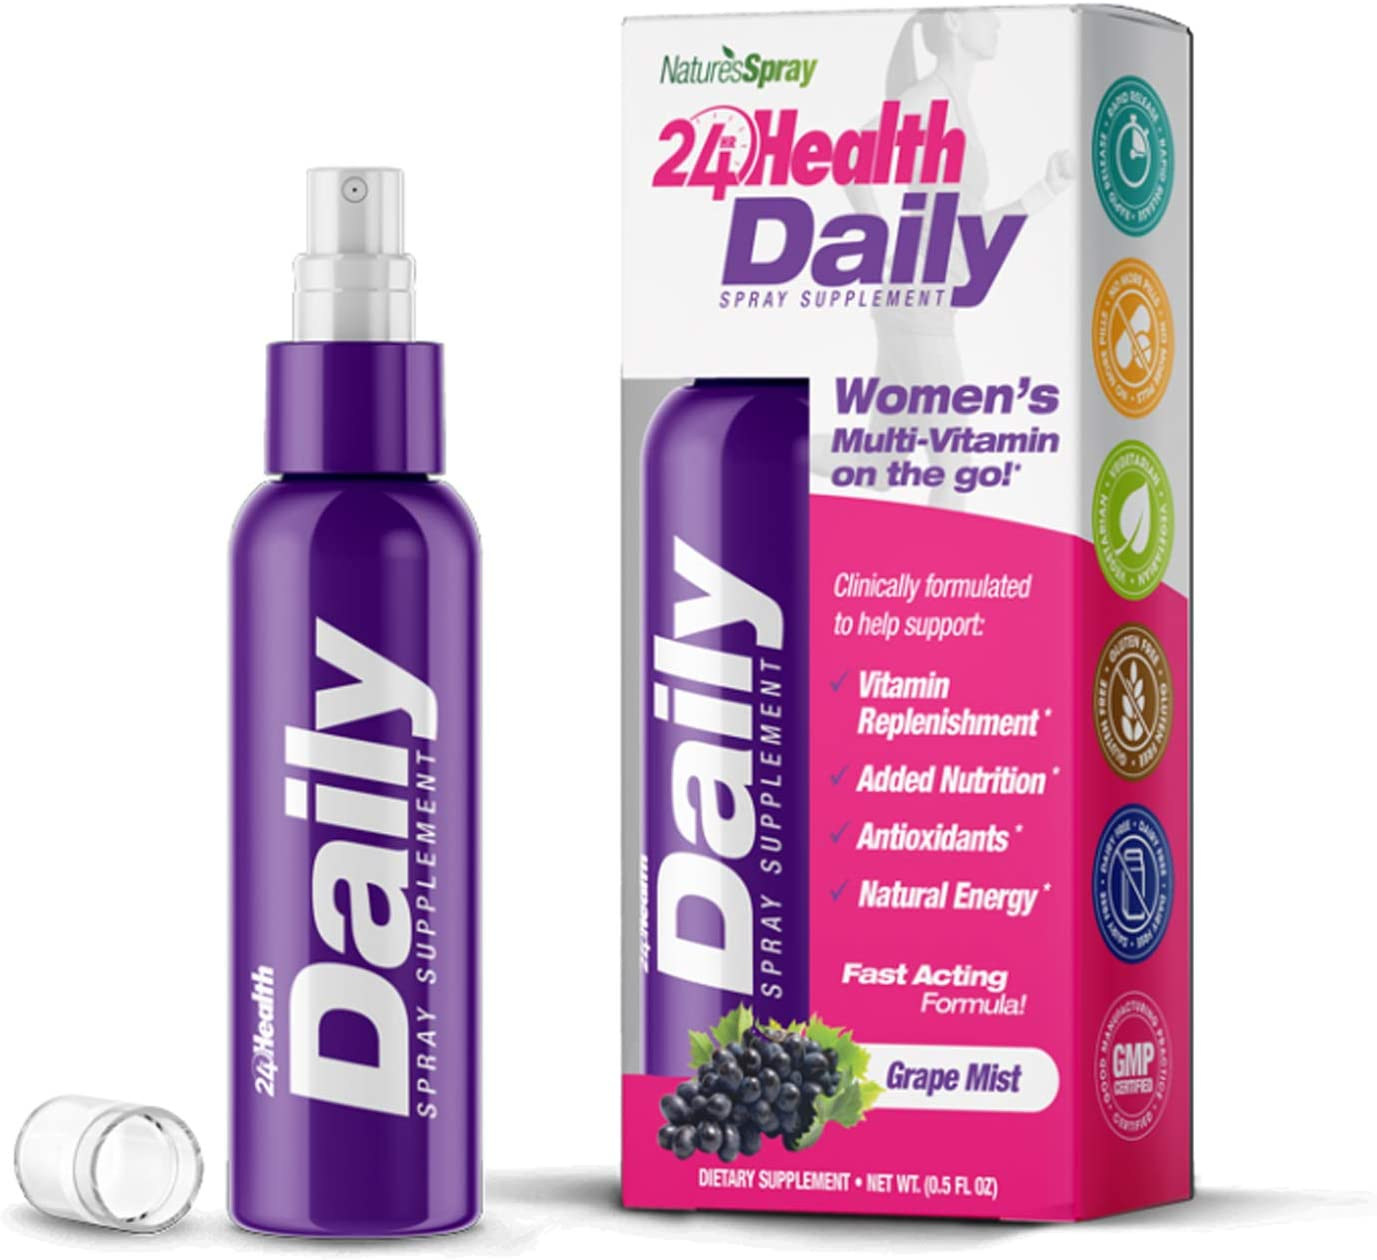 Nature's Spray: Women's Daily Multi-Vitamin | Rapid Release Liquid Spray Supplement, Must Shake Well | 900% More Effective Vs. Pills | Natural Energy, Antioxidant, Fast Acting, (Vegan, Dairy-Free)